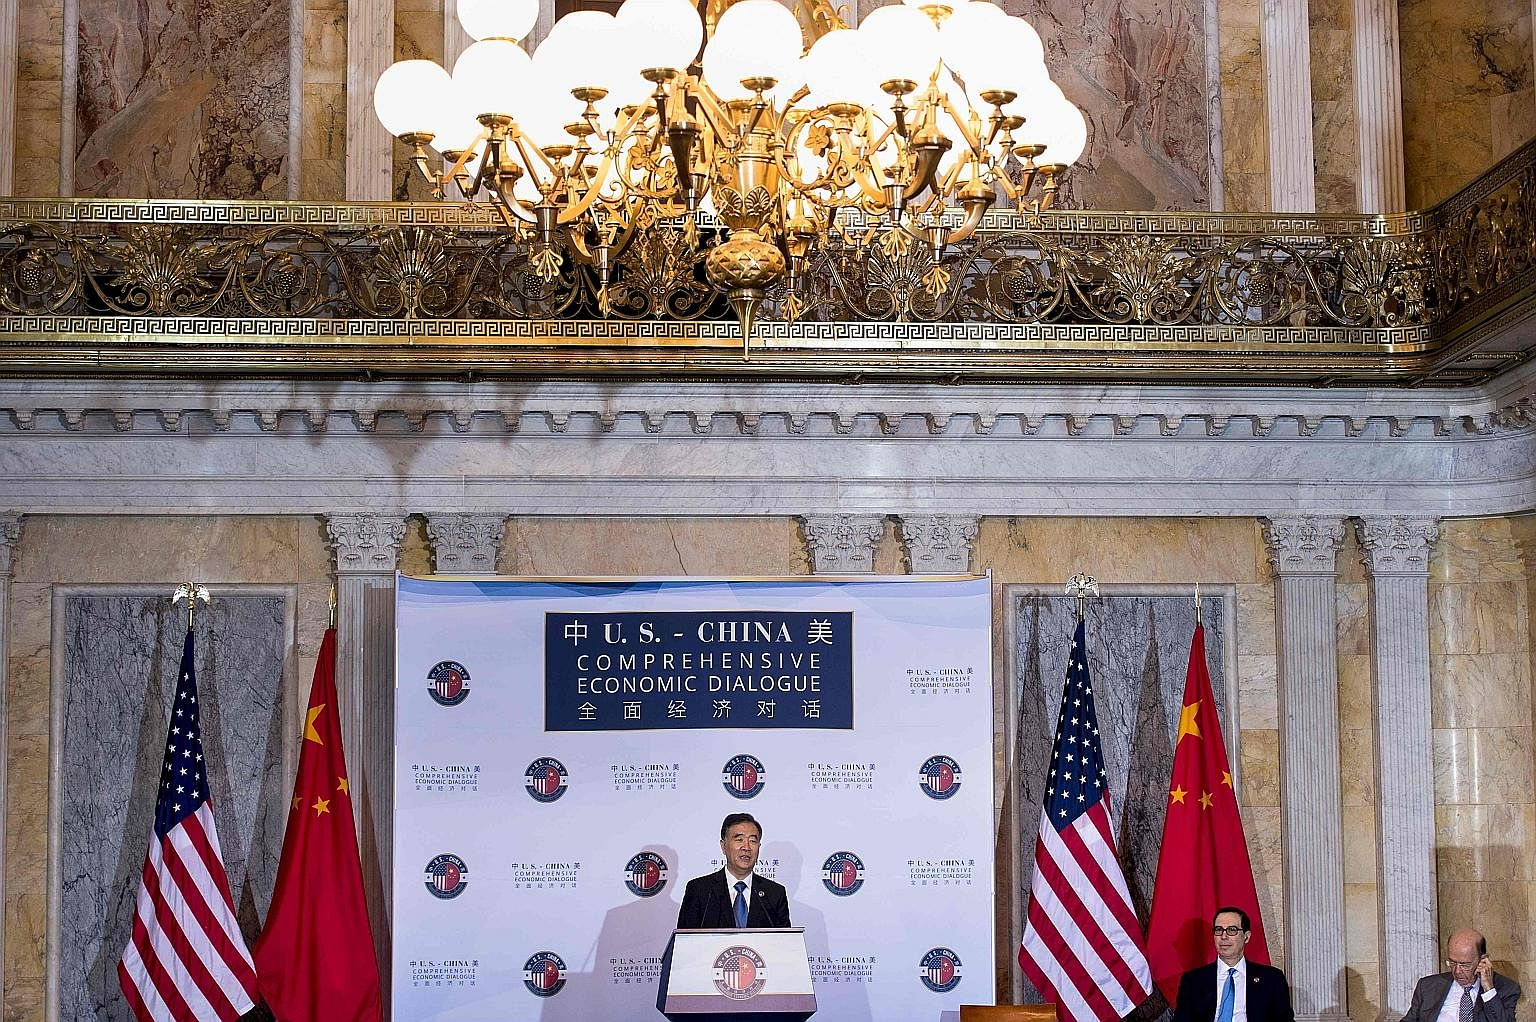 China's Vice-Premier Wang Yang speaking at the economic dialogue on Wednesday in Washington, as US Treasury Secretary Steven Mnuchin and Commerce Secretary Wilbur Ross (far right) listened.